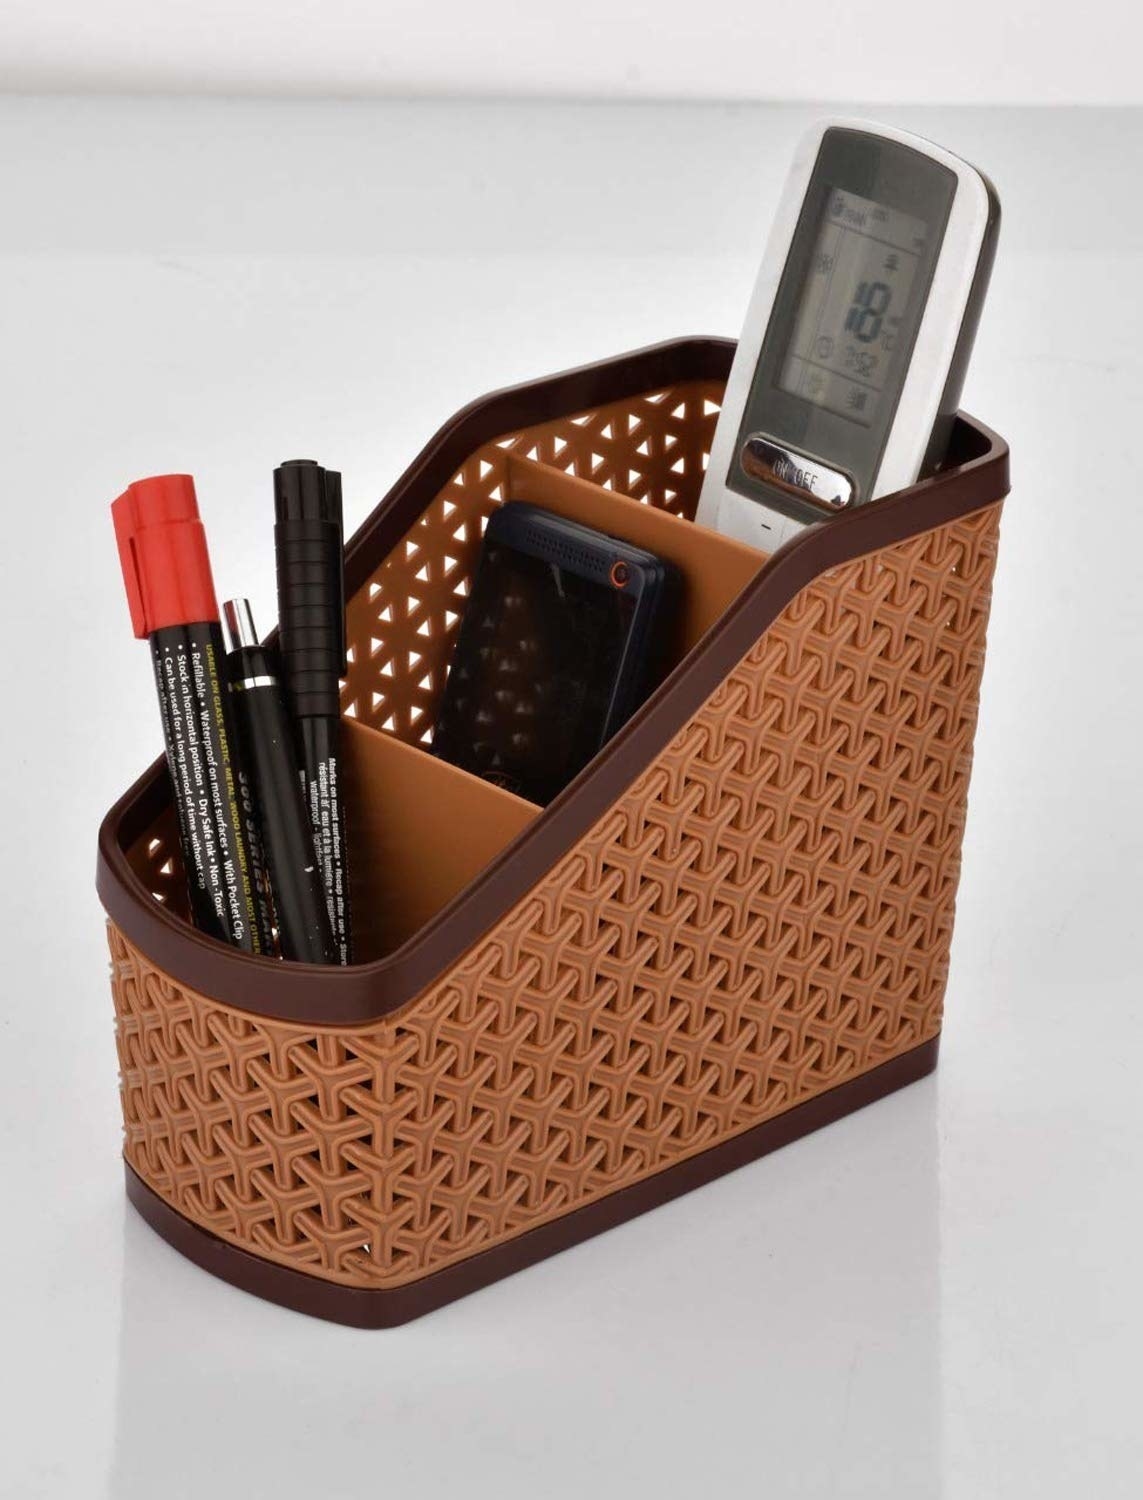 A brown organiser with items in it